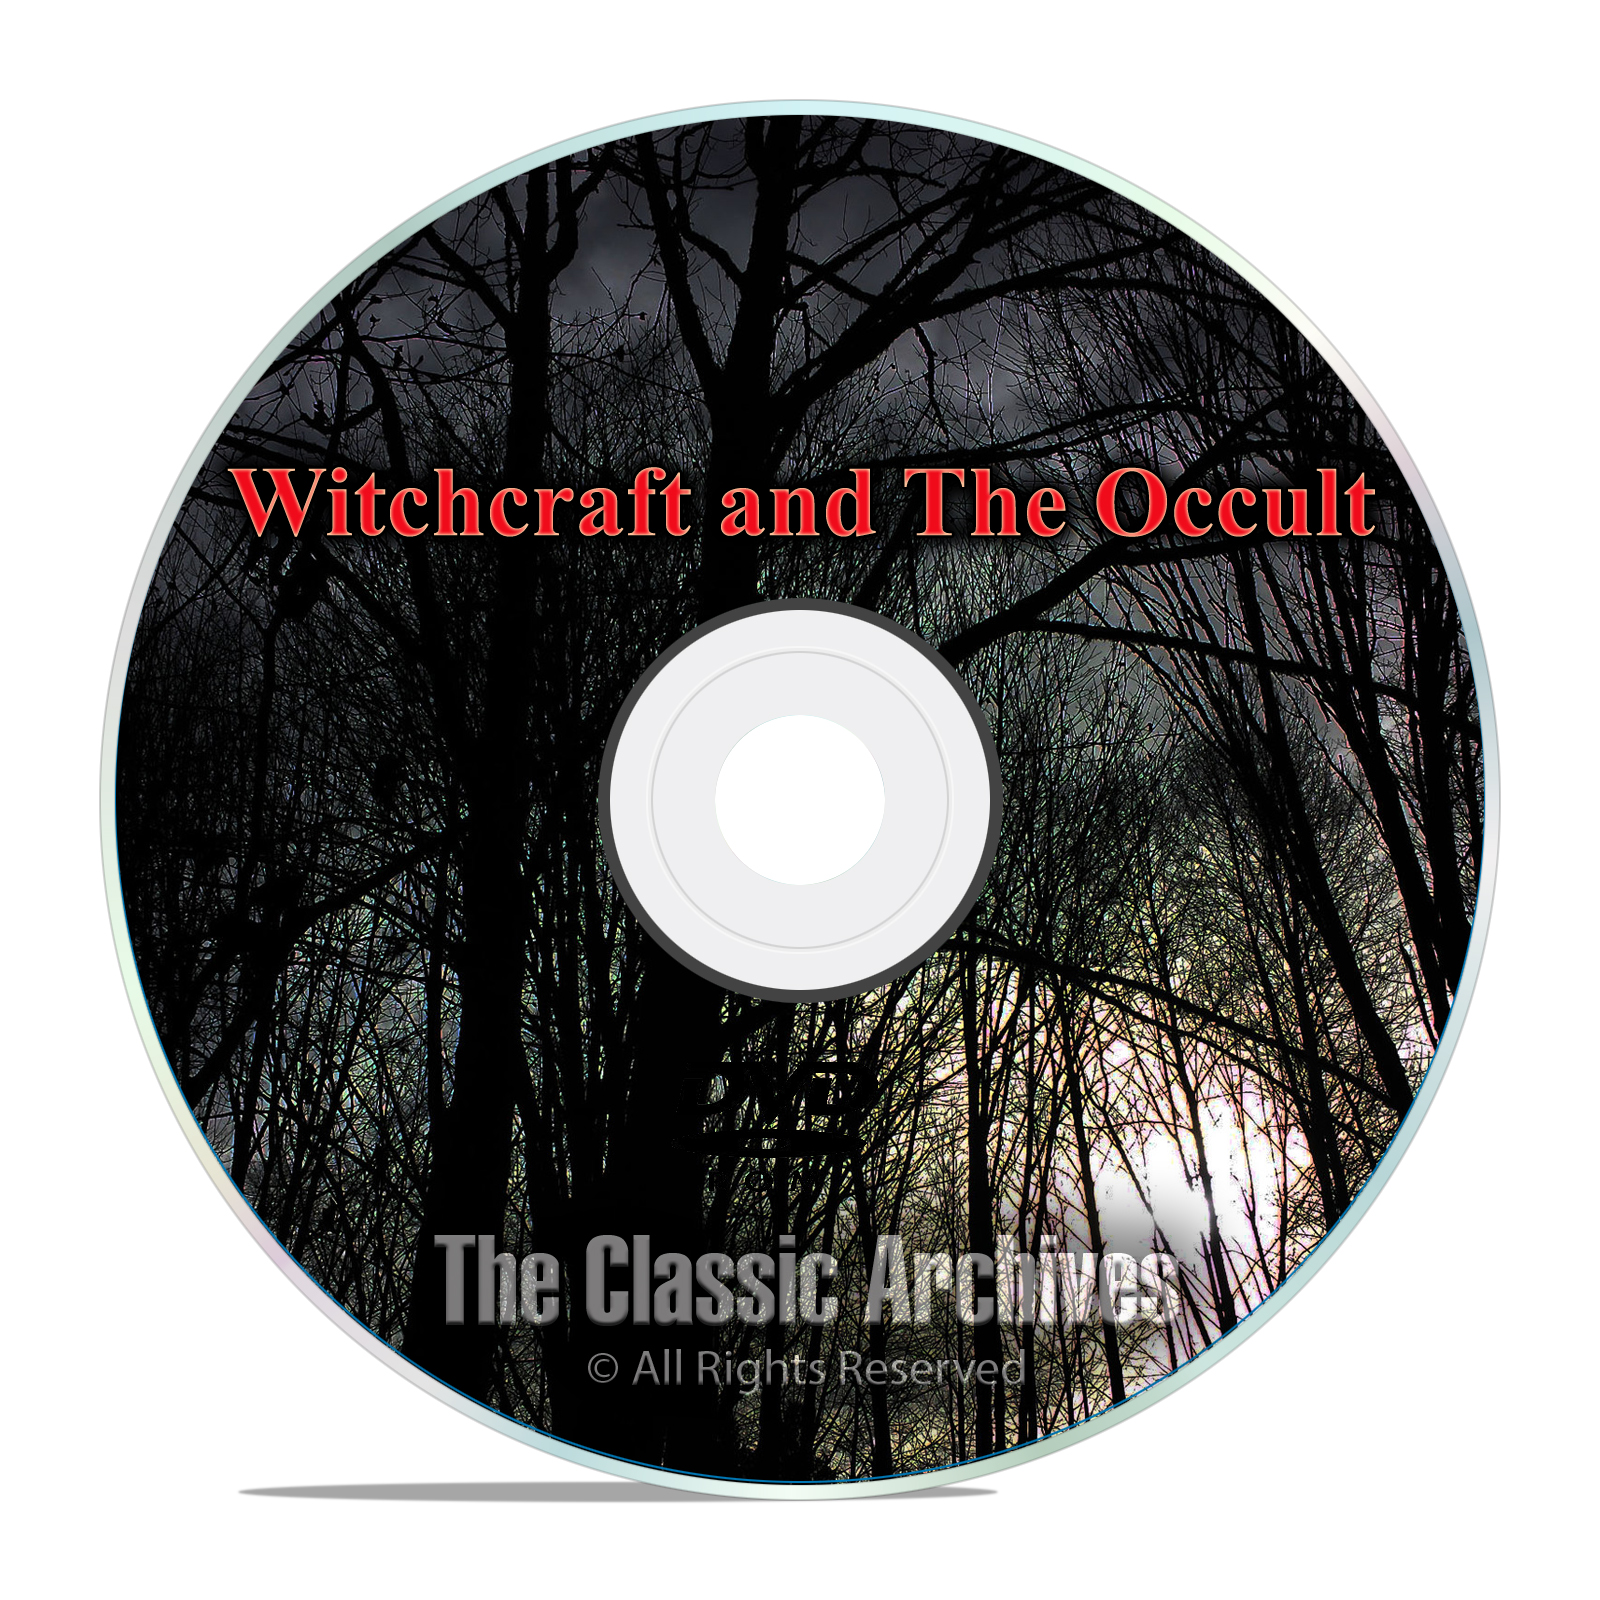 400 Witchcraft, Witch, Witches, Occult, Magic, Demonology Books Library DVD